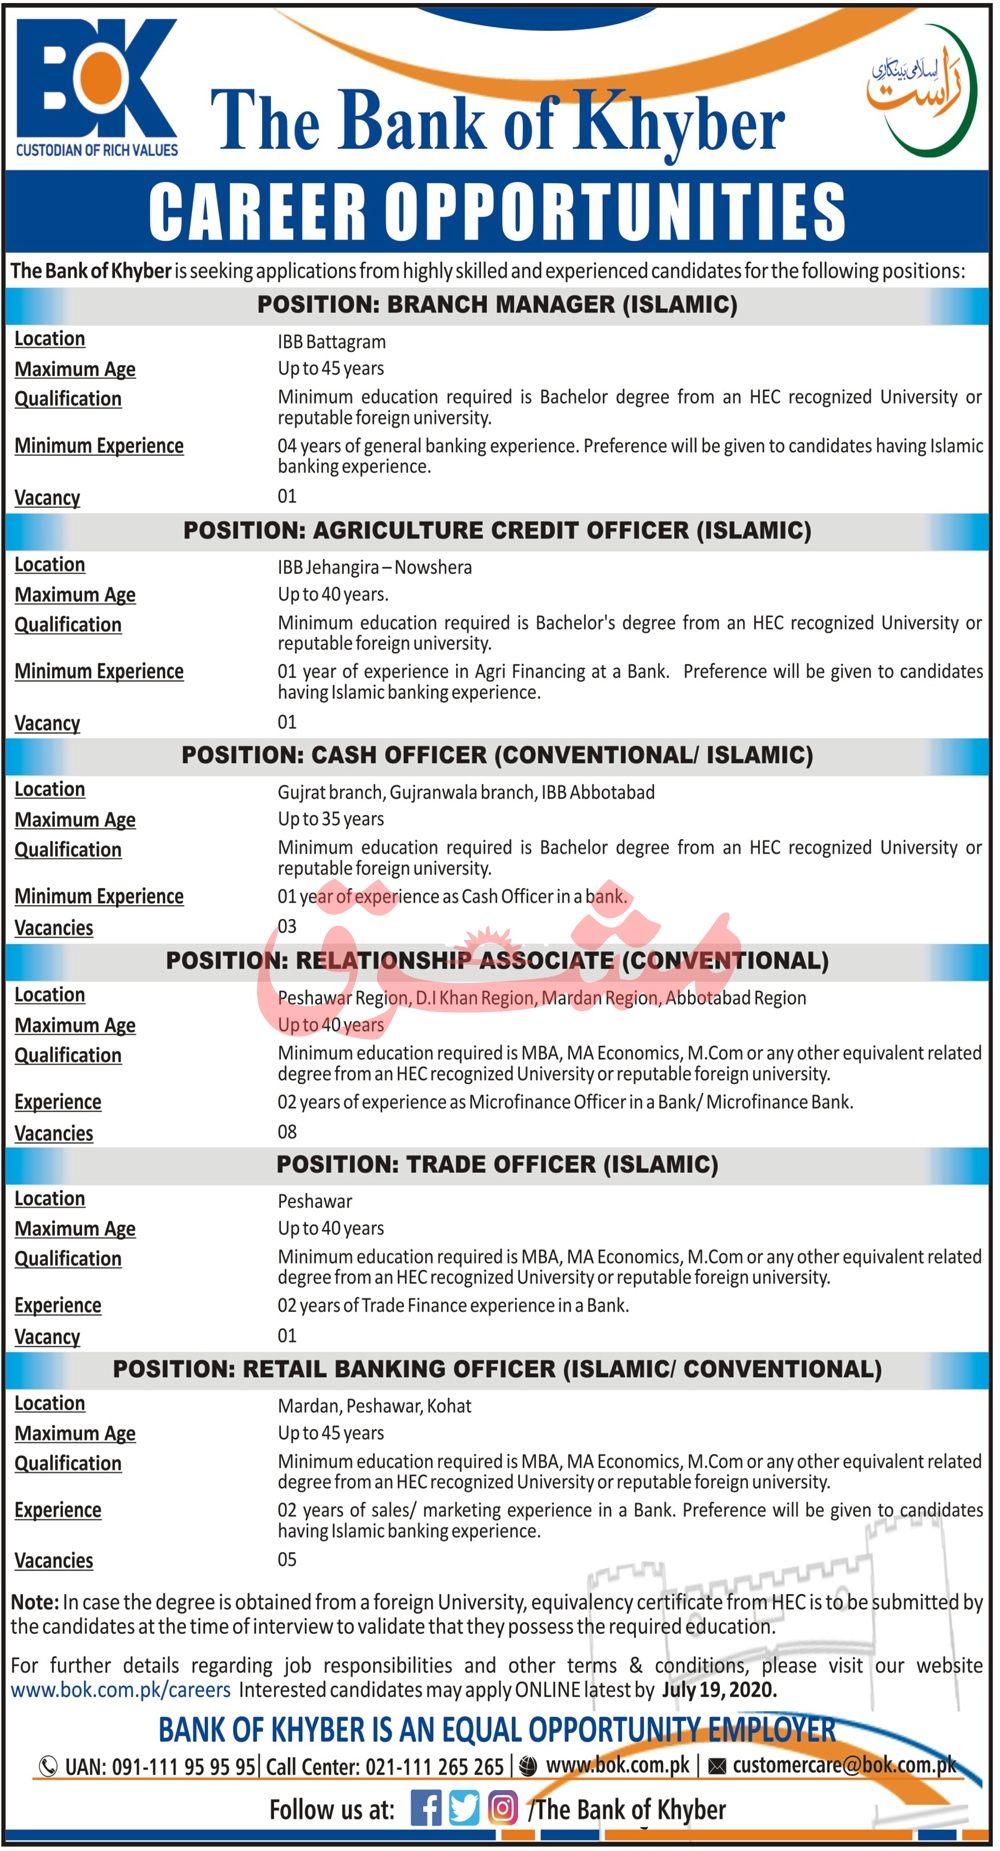 The Bank of Khyber BOK Jobs July 2020